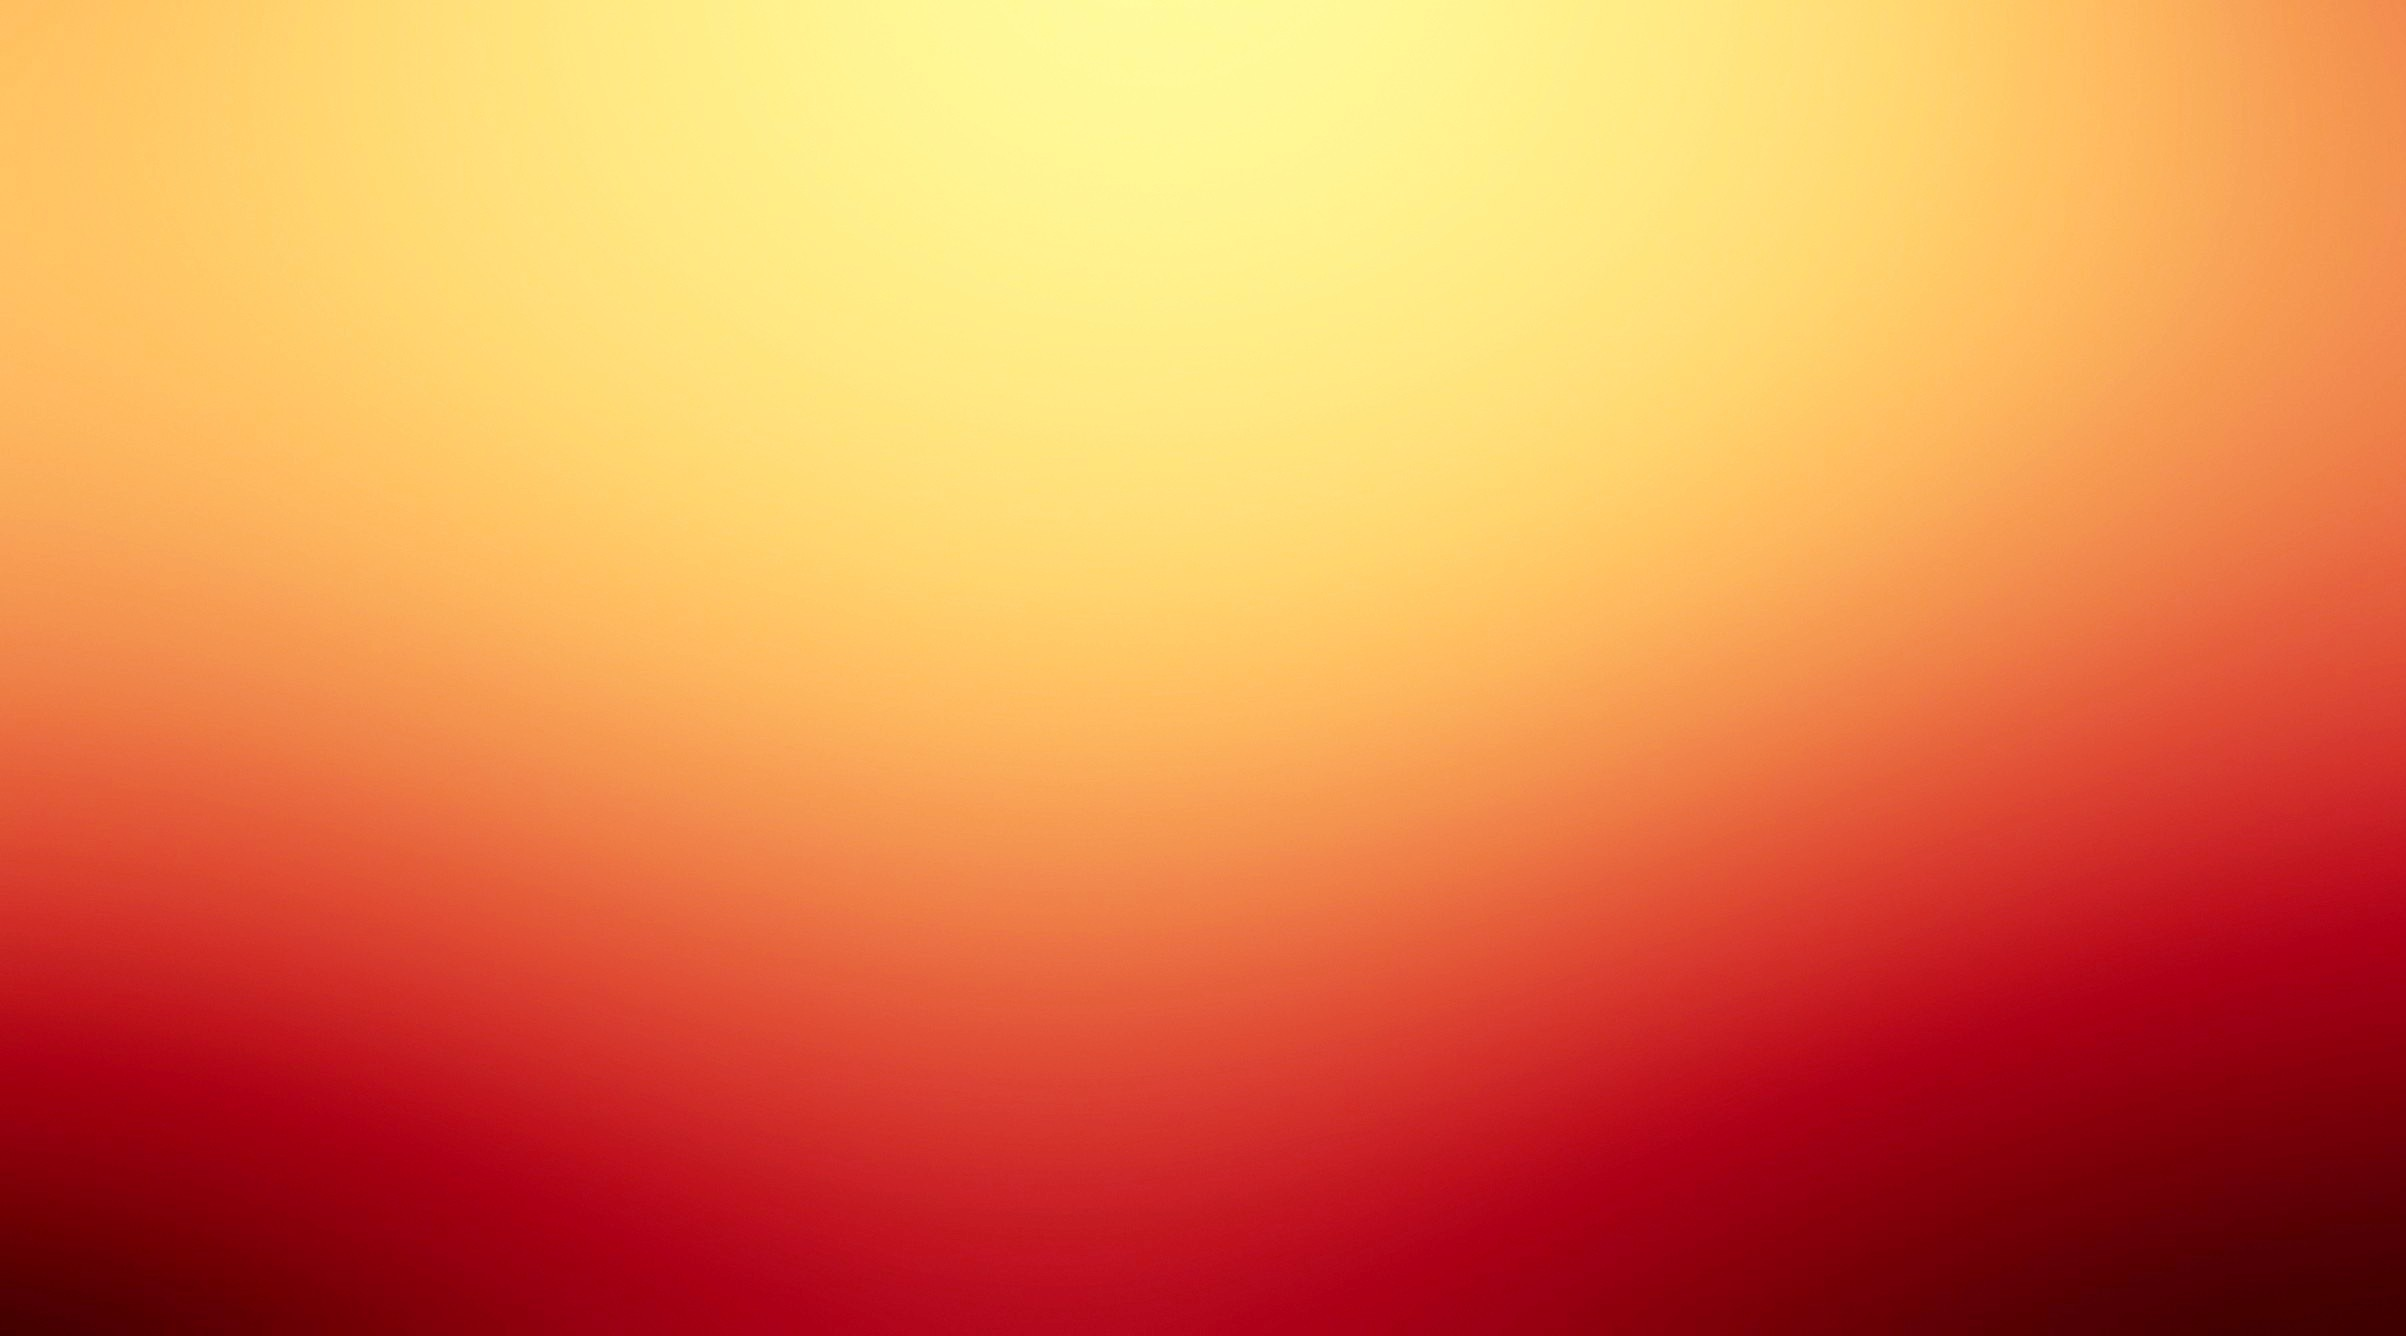 Maroon Background 183 ① Download Free Awesome Full Hd Backgrounds For Desktop Mobile Laptop In